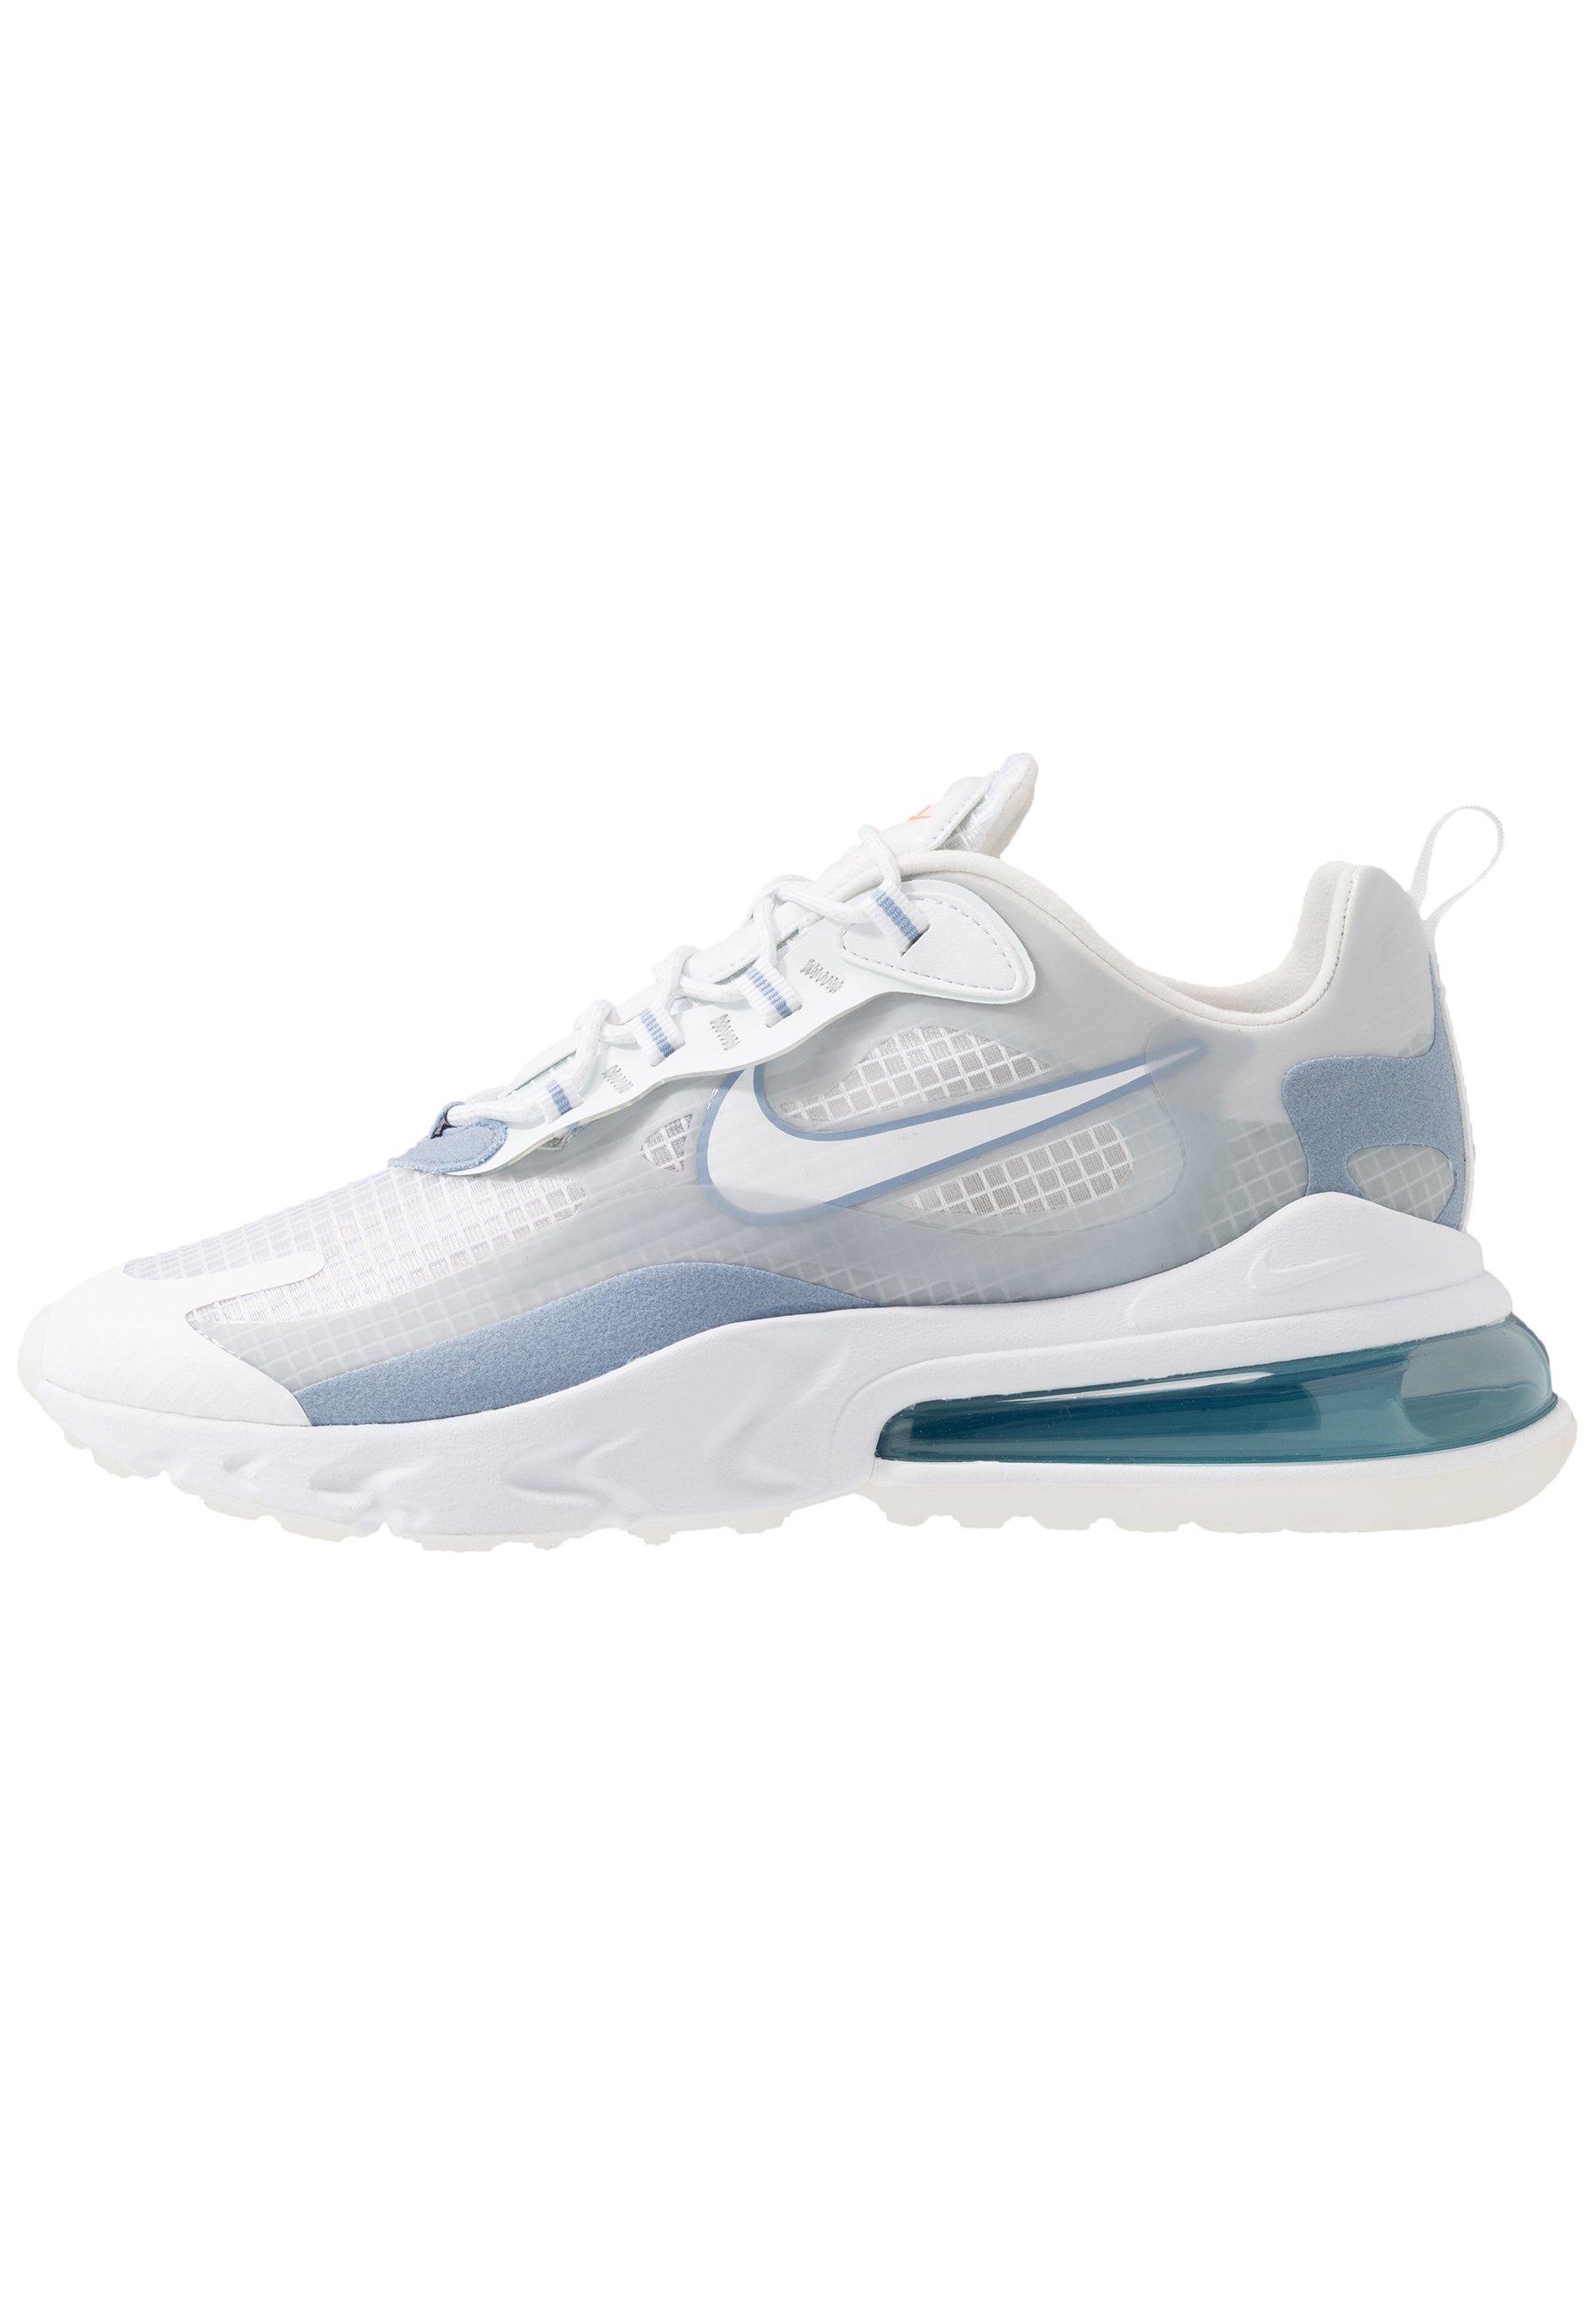 AIR MAX 270 REACT SE Sneakers basse whitepure platinumindigo foghyper crimson